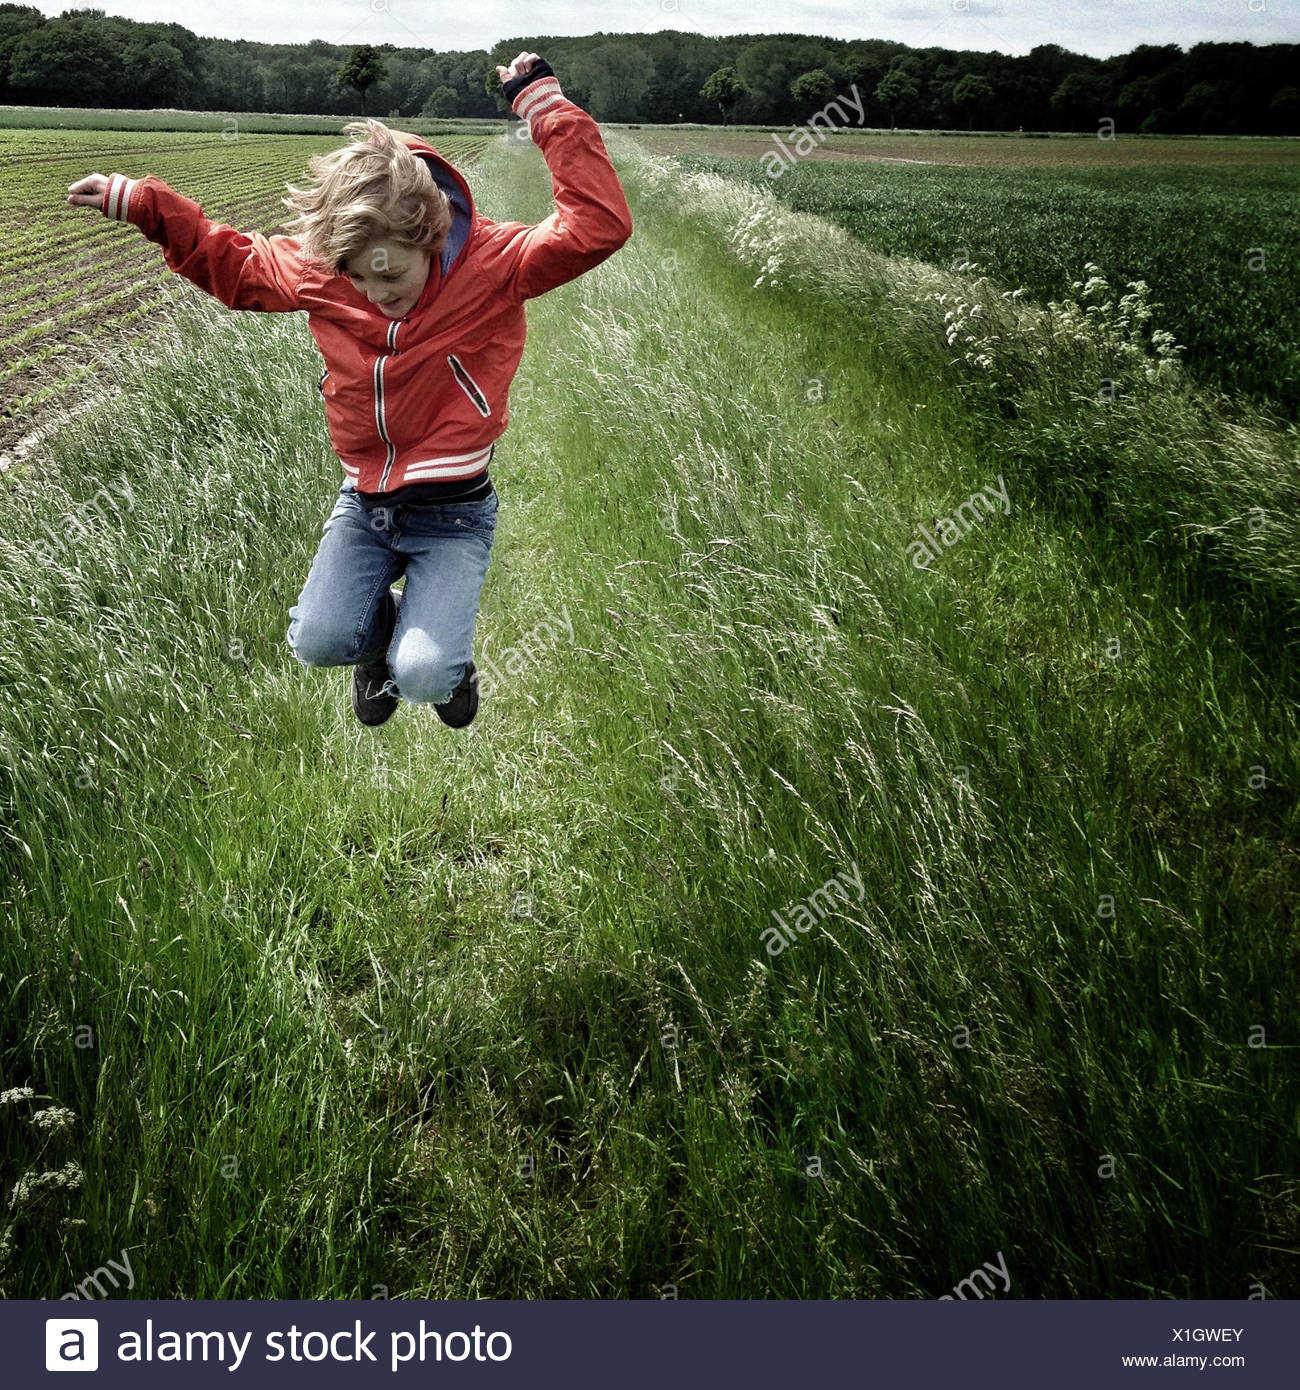 Boy Jumping In a field - Stock Image